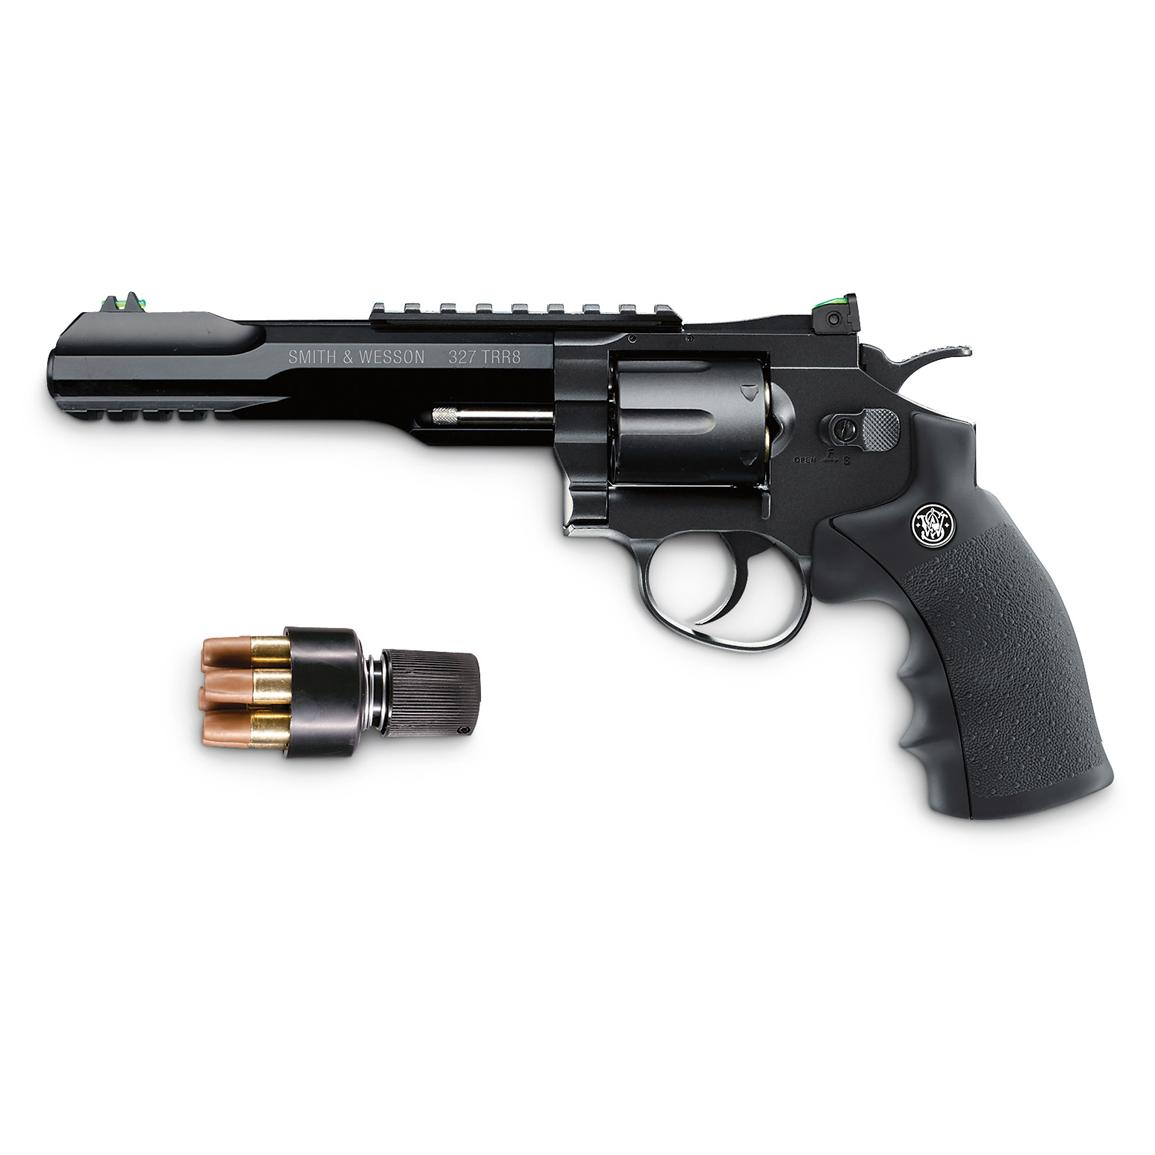 Smith & Wesson® 327 TRR8 Air Pistol